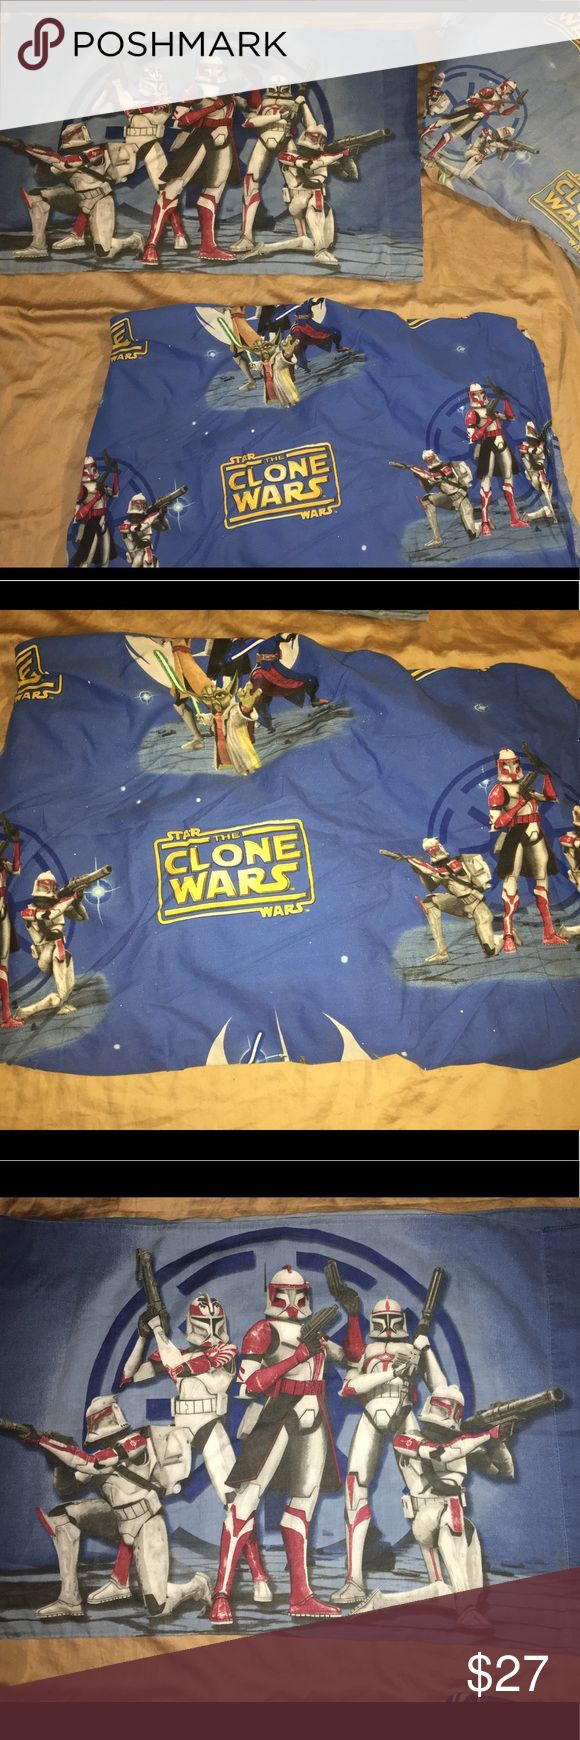 Four piece Star Wars clone wars sheet set TWIN SZ Thank you for viewing my listing, for sale is a four piece Star Wars the clone wars she said. You will receive two fitted twin size sheets, and two new Star Wars pillowcases. The sheets are the exact same and so were the pillowcases.  One sheet looks brand-new, the other sheet is very faded and has definitely been slept on. Both are fitted and both are size twin  Both pillowcases are in good condition  If you have any questions or would like…